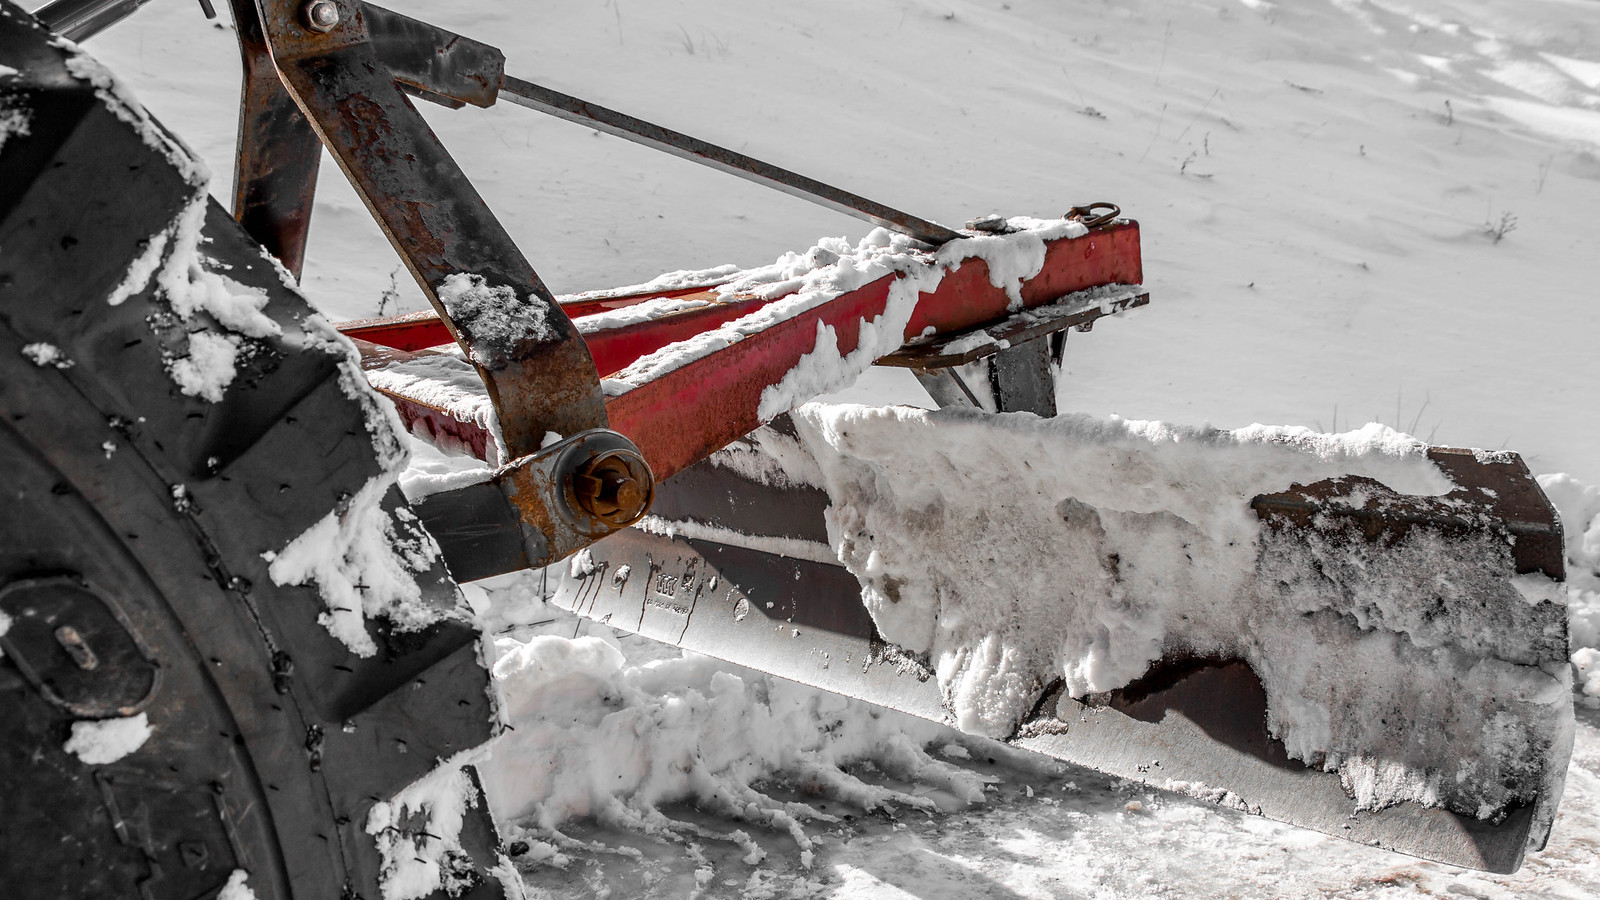 (driveway) snow removal blade